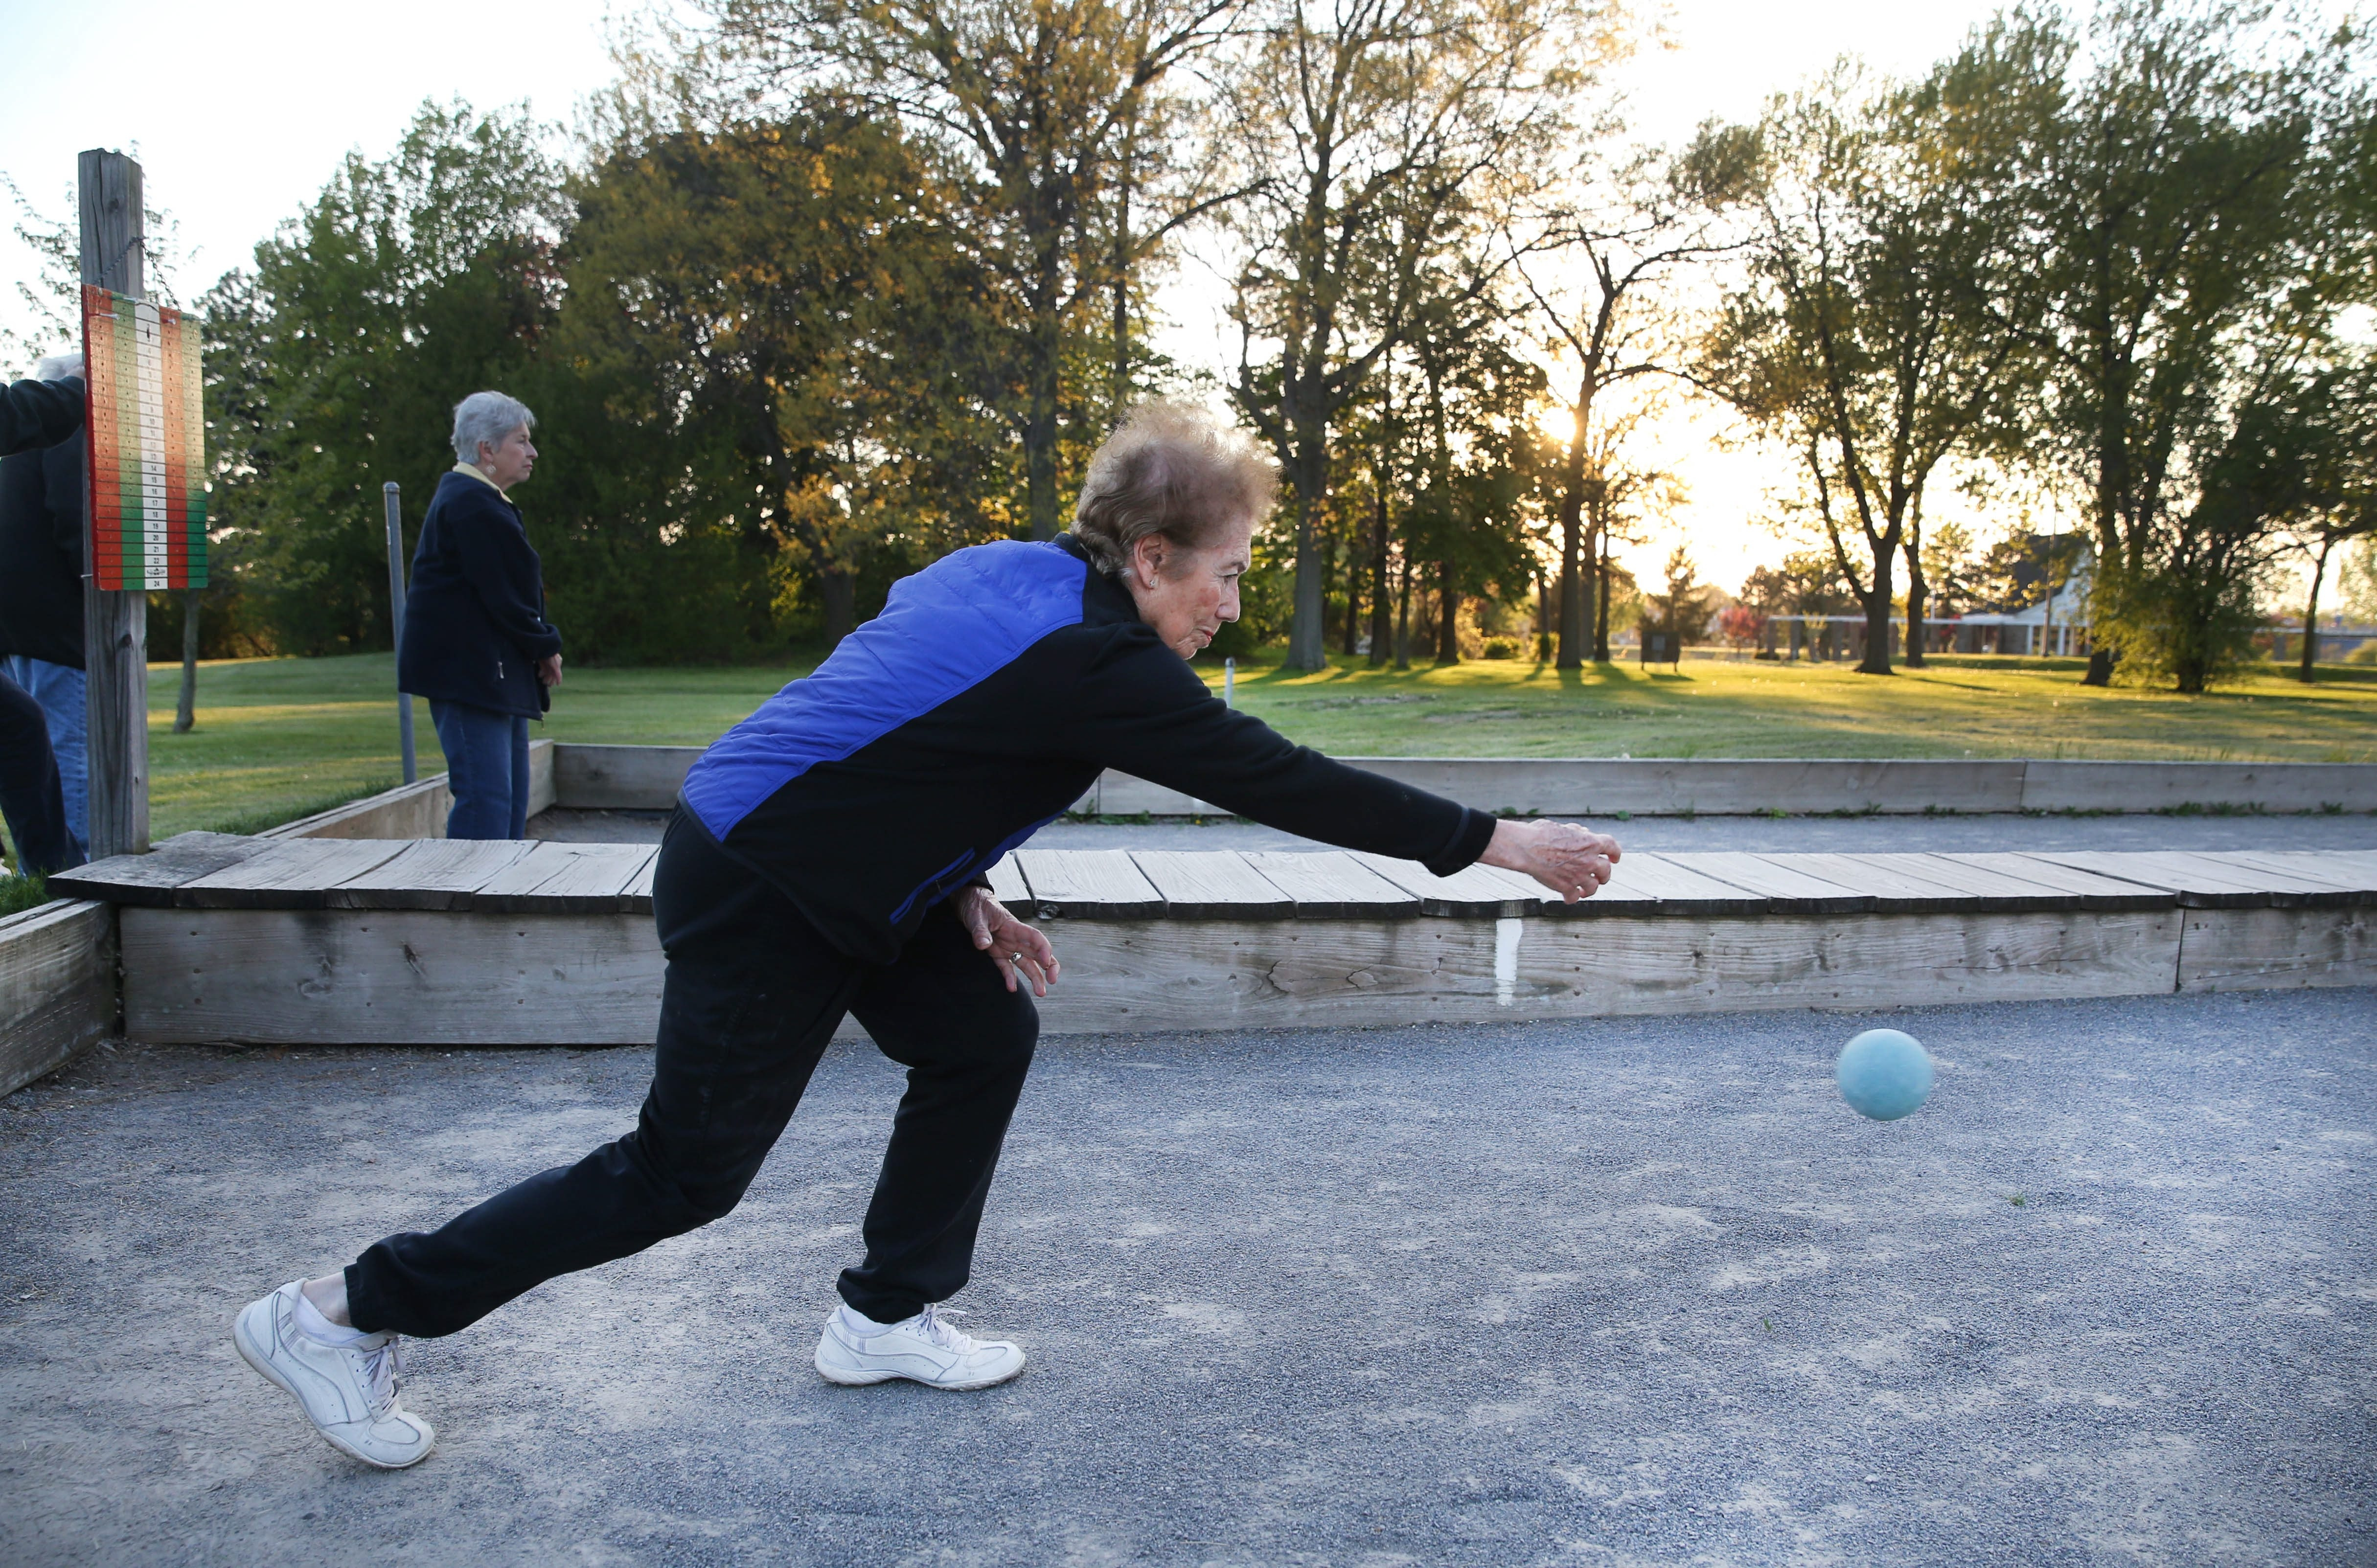 Fun for all: On Thursday night, the women's teams play in the Hyde Park Bocce League in Niagara Falls. At top left, teammates Terry Smith, Kathy Culbreth and Marge George celebrate a good shot while Esther Runca, below, follows through on her shot. Bottom left, co-workers, from left, Tim Drews, Nick Manolakis, Mike Neth and Darren Zoldos enjoy a game at Illio DiPaolo's, and Anita Leo puts the ball in play at Hyde Park.